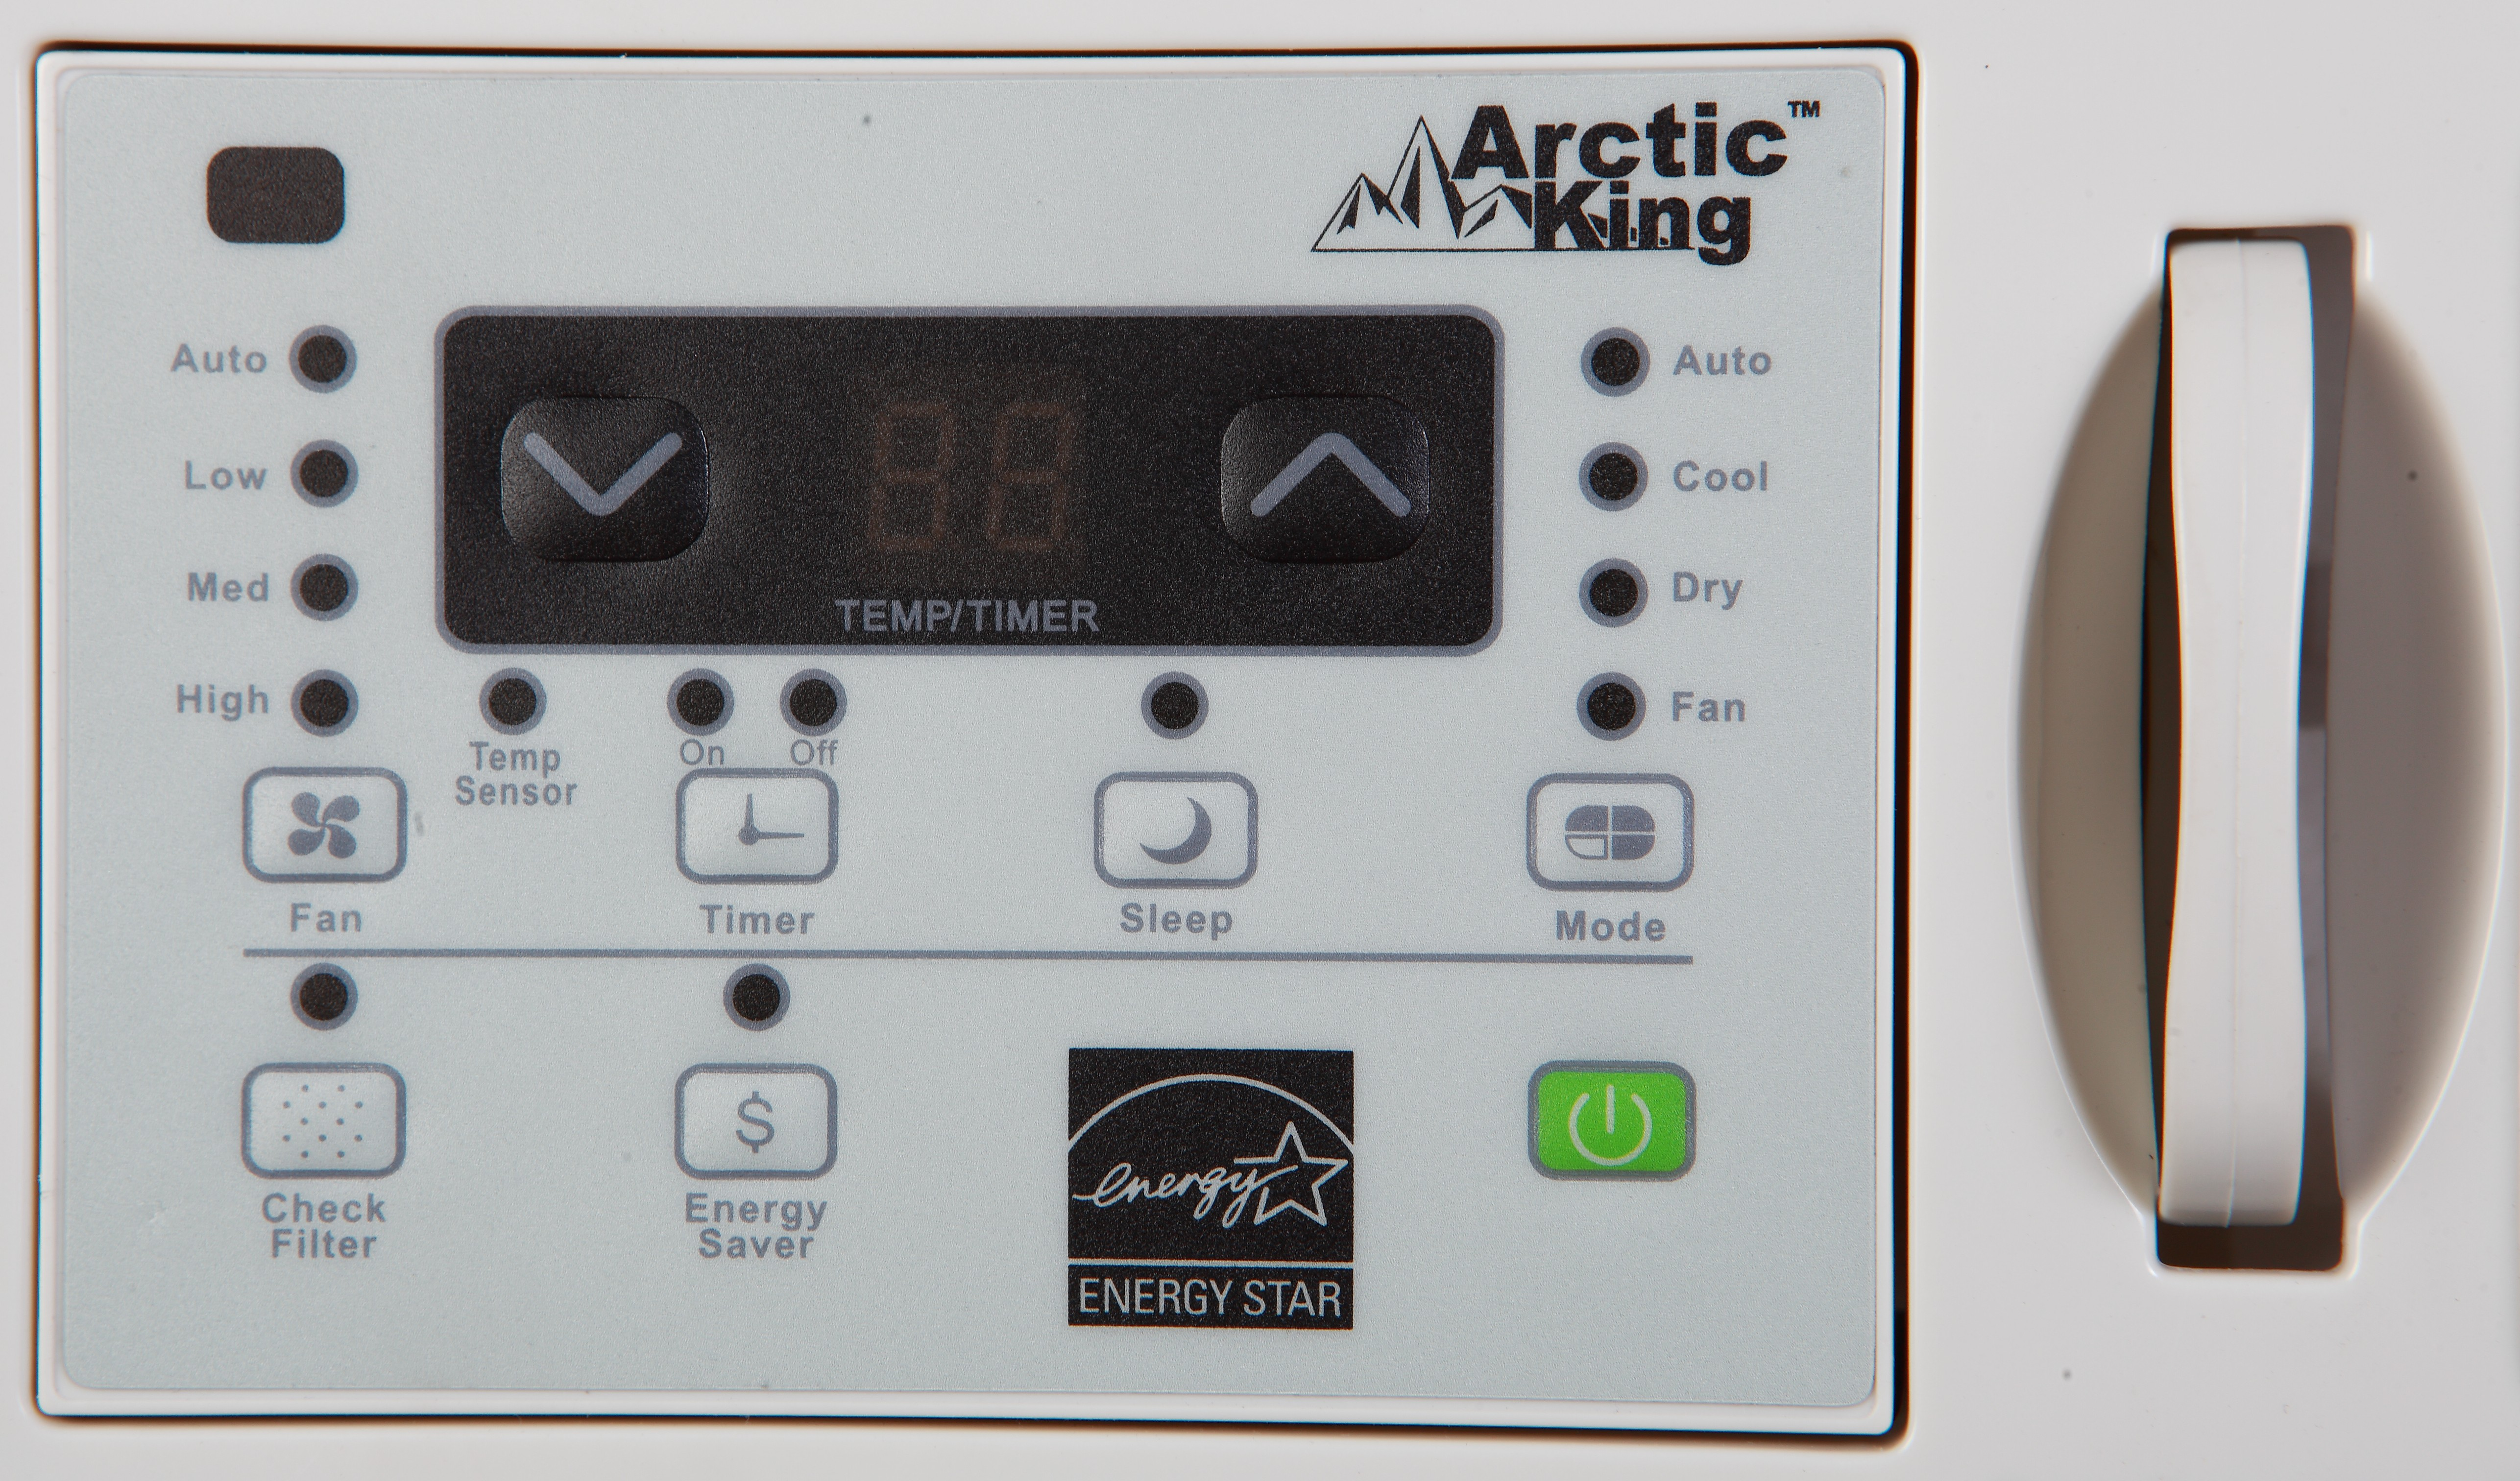 Arctic King WWK25CR72N 25000 Btu Remote Control Window Air